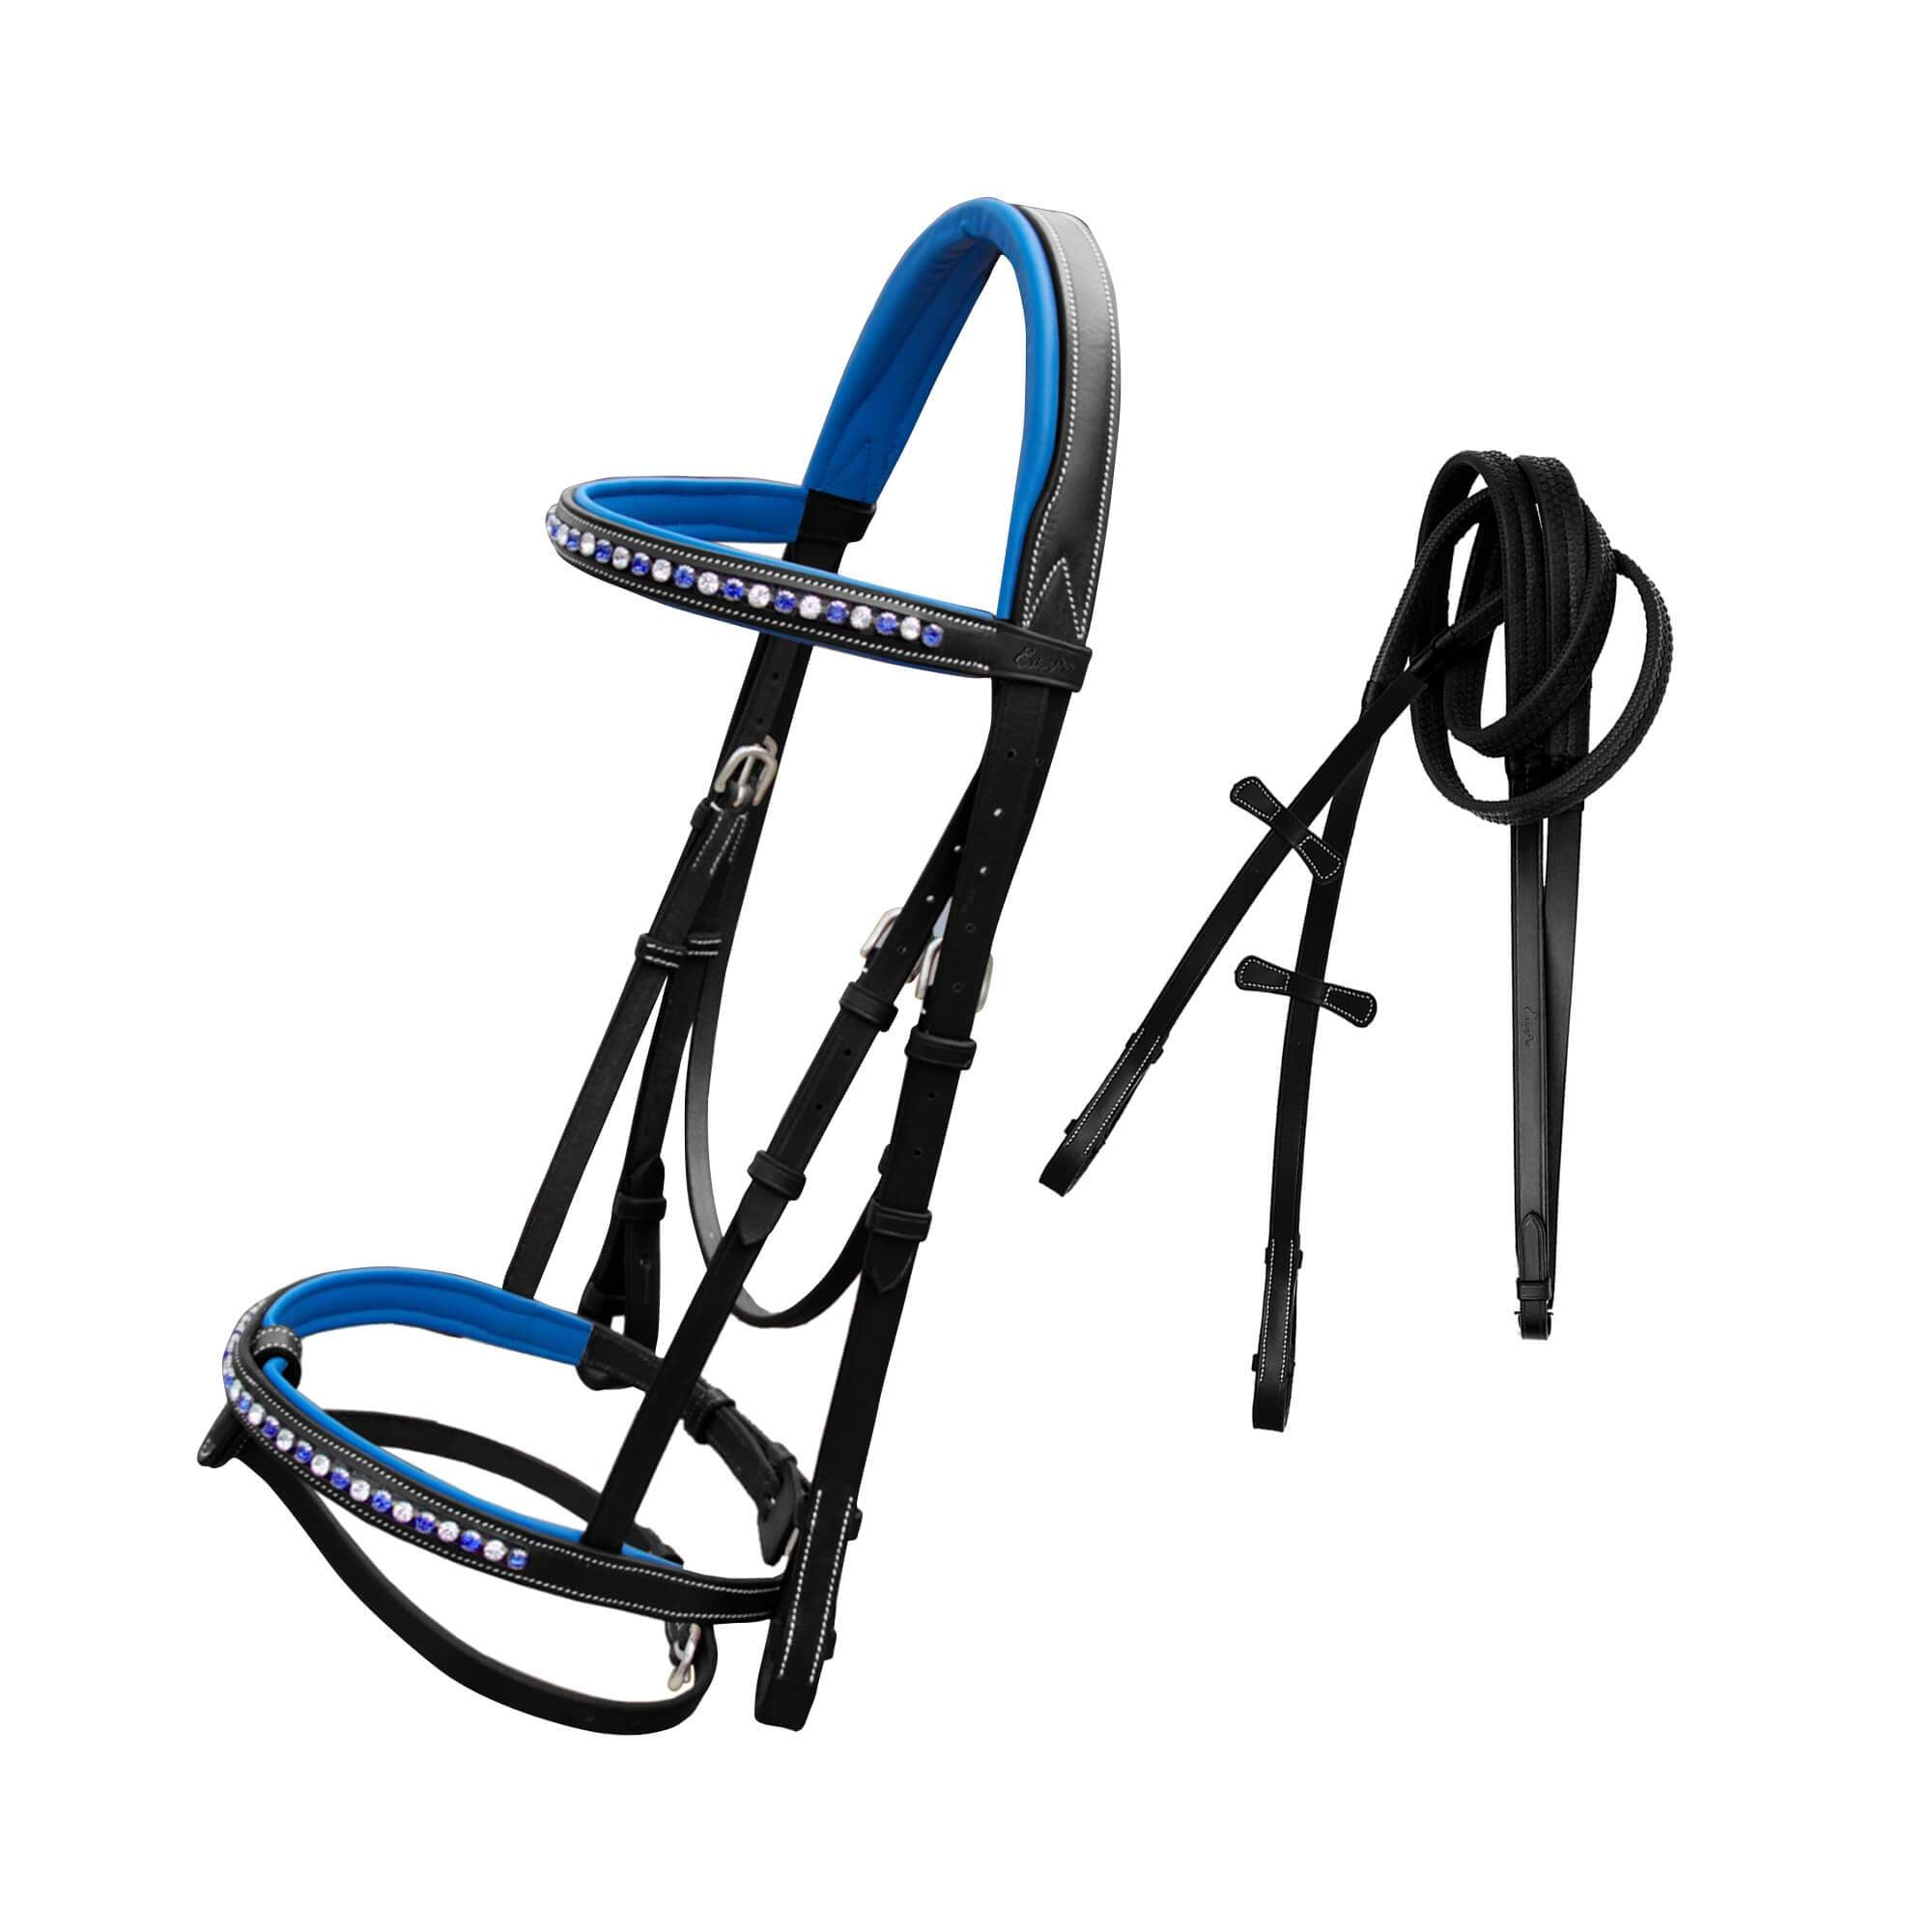 ExionPro Alternate White & Dark Blue Bling Jumping Bridle With Reins-Bridles & Reins